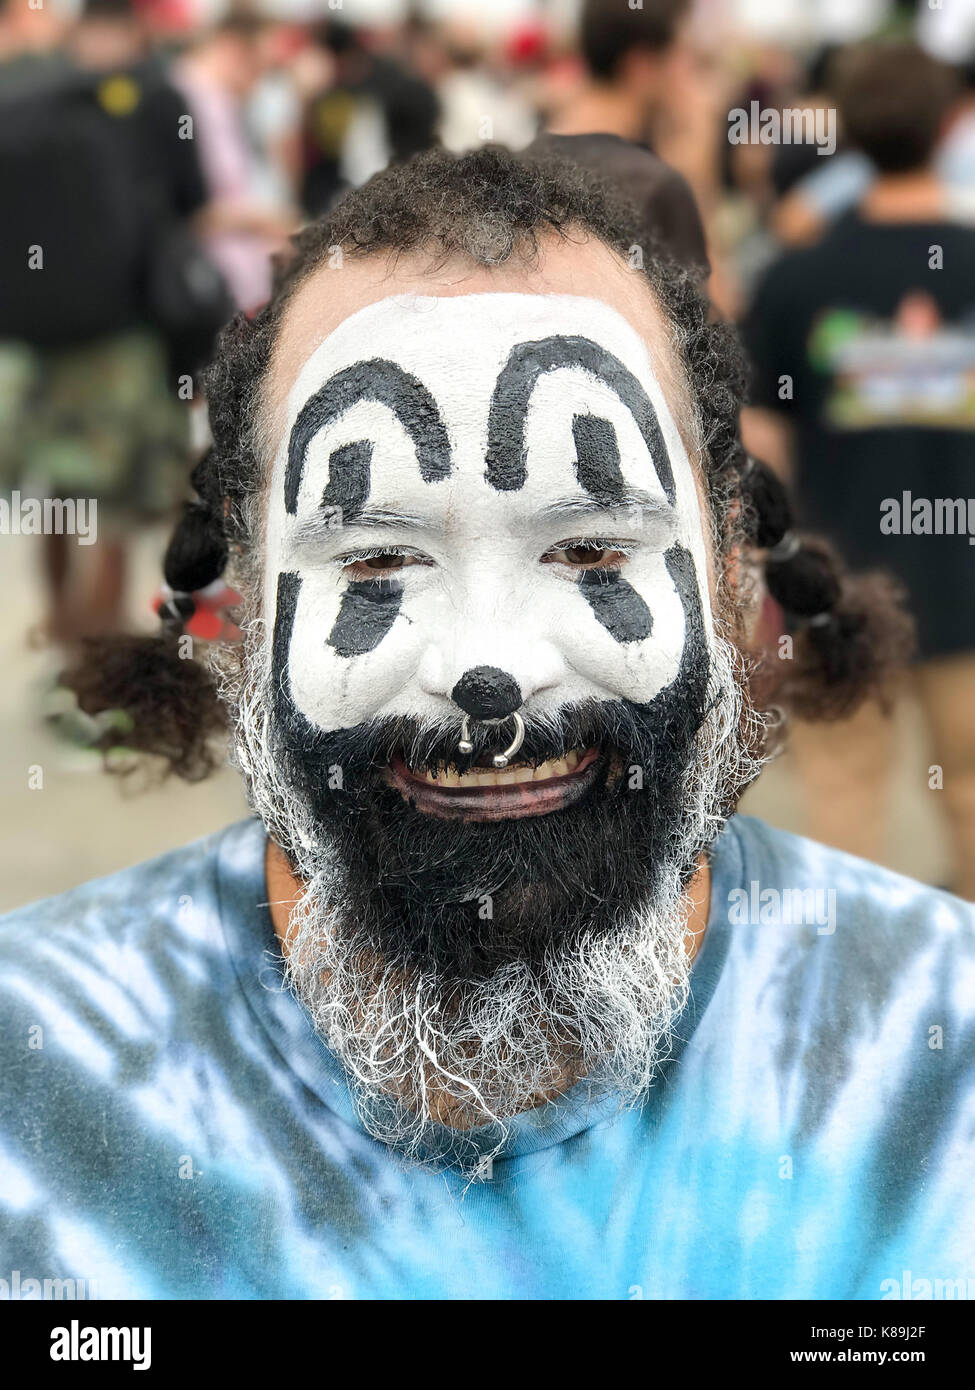 Washington, D.C, USA. 16th Sep, 2017. Poncho poses for a photo as he attends Juggalo march and rally at the Lincoln Stock Photo